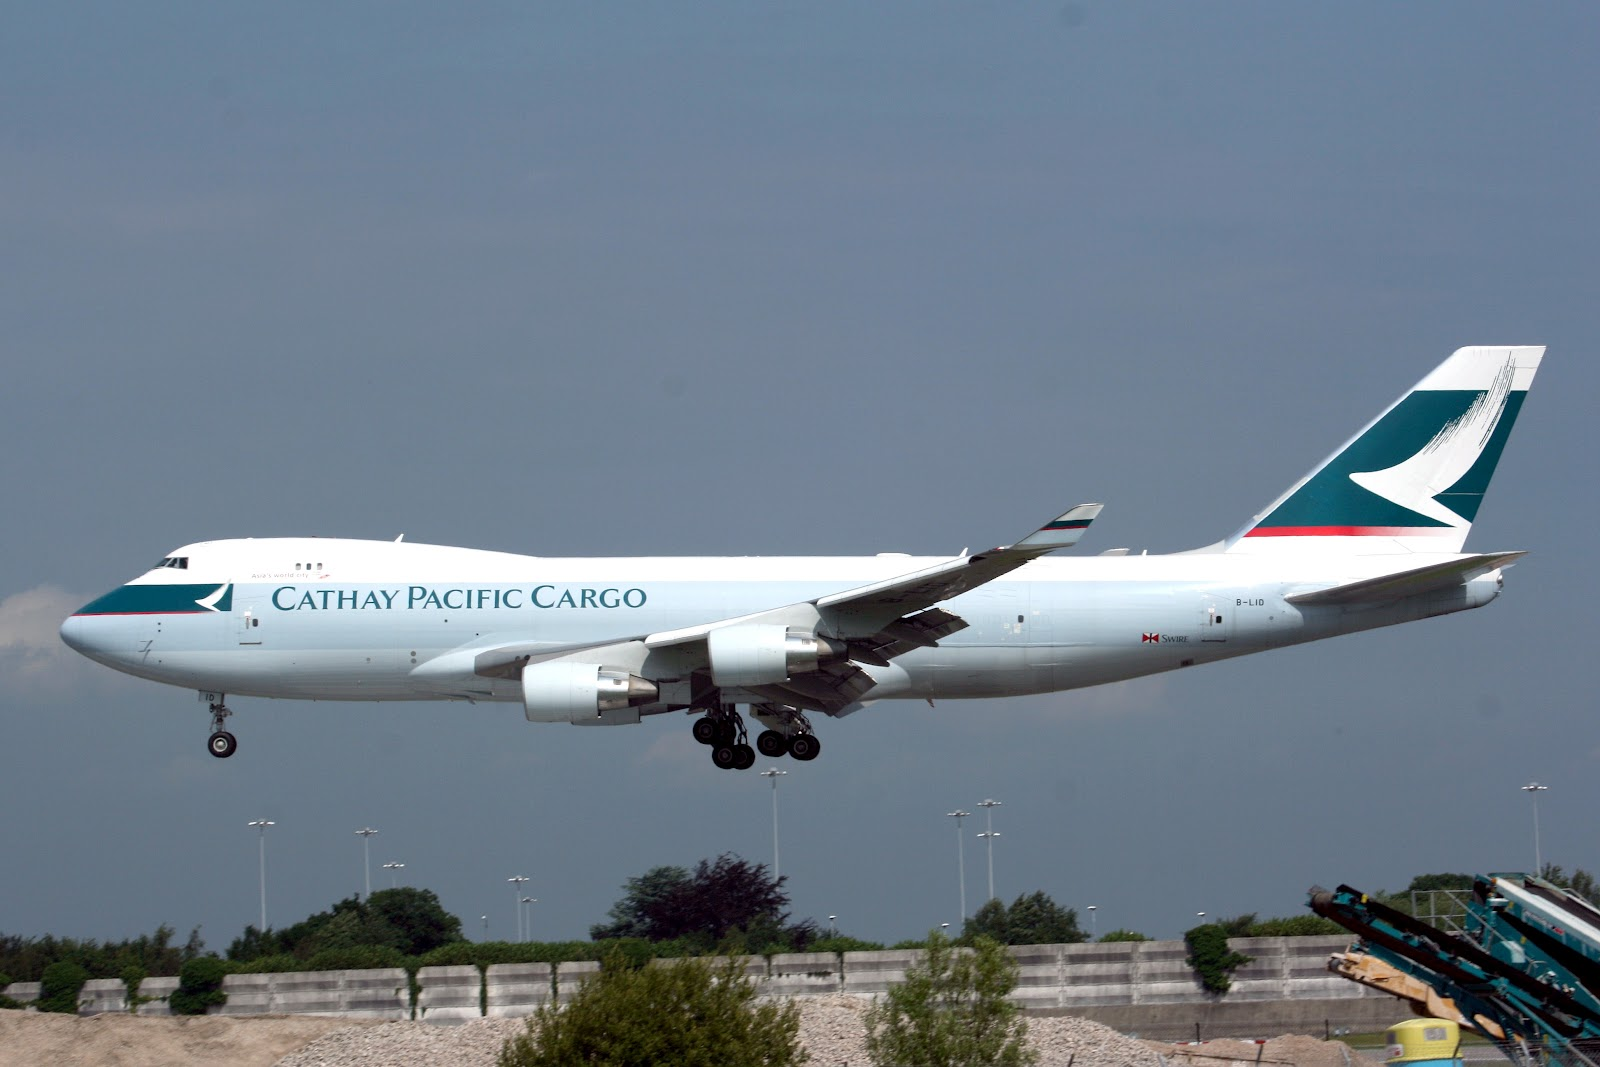 Boeing 777 Wallpaper Hd Boeing 747 400f Of Cathay Pacific Cargo Aircraft Wallpaper